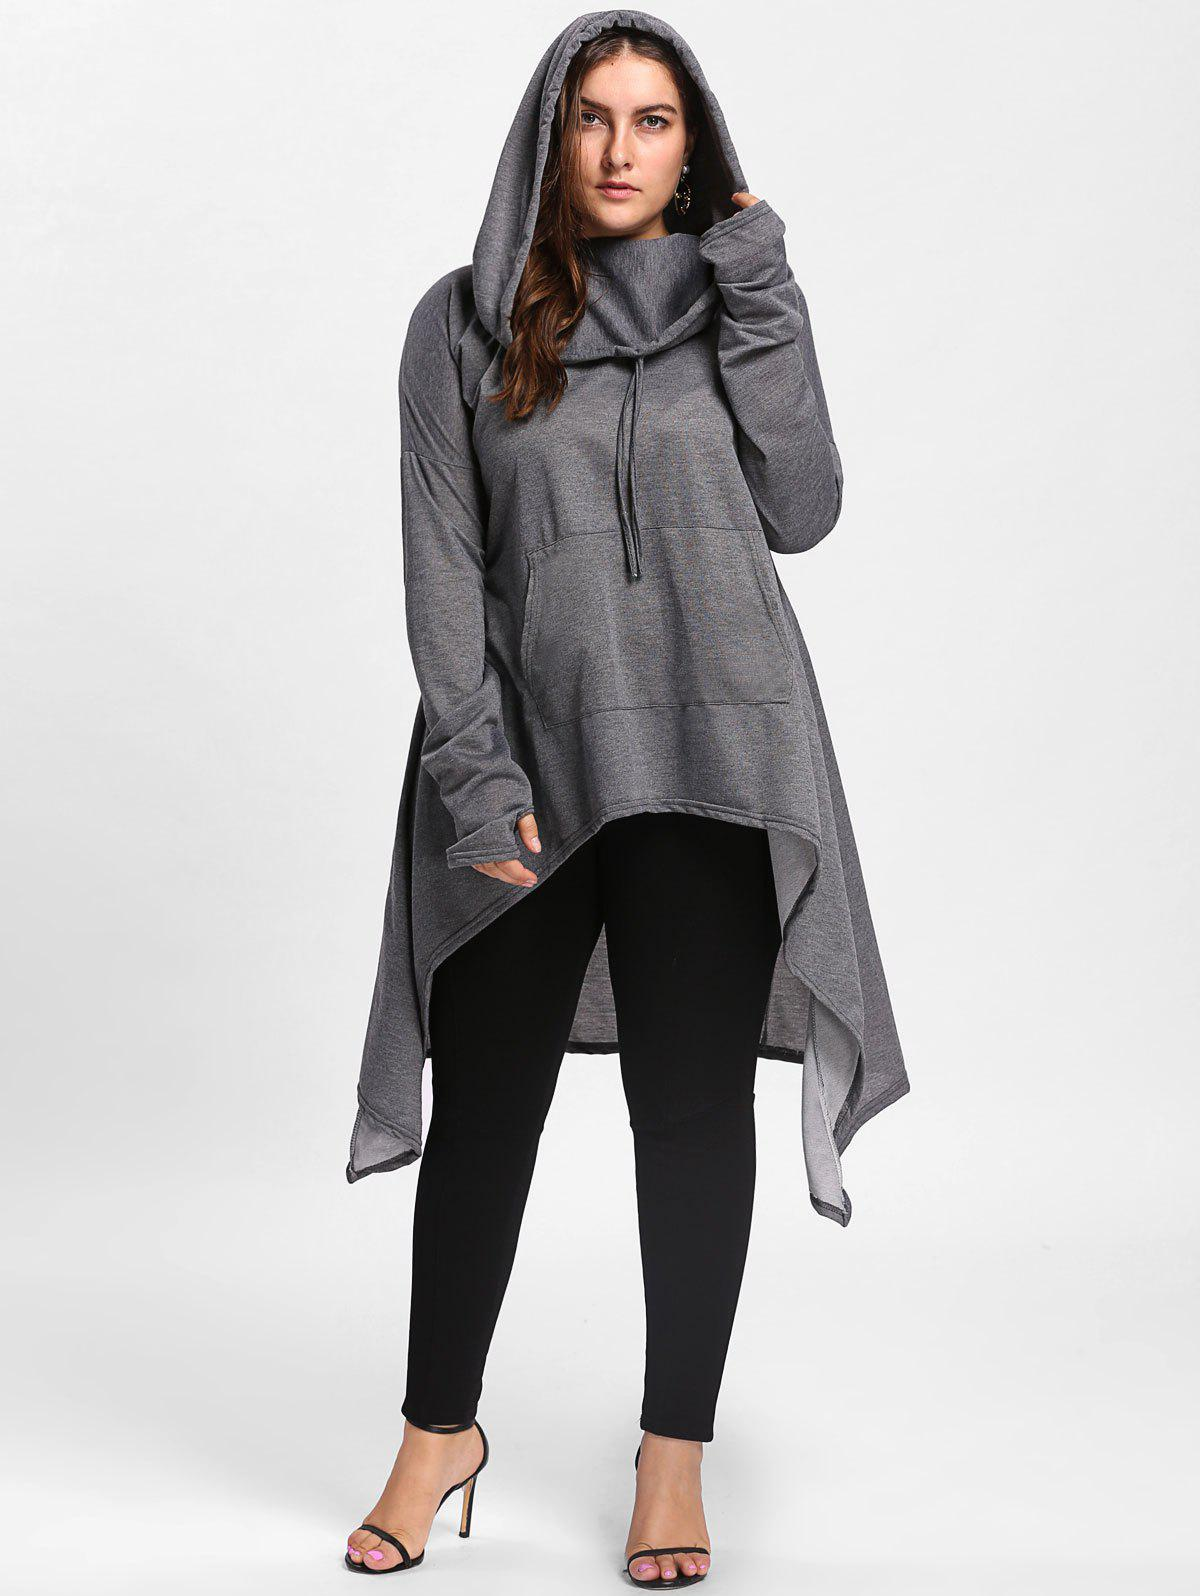 Plus Size Maxi Asymmetric Funnel Collar HoodieWOMEN<br><br>Size: 5XL; Color: DEEP GRAY; Material: Cotton Blend,Polyester; Shirt Length: X-Long; Sleeve Length: Full; Style: Fashion; Pattern Style: Solid; Season: Fall,Winter; Weight: 0.5800kg; Package Contents: 1 x Hoodie;